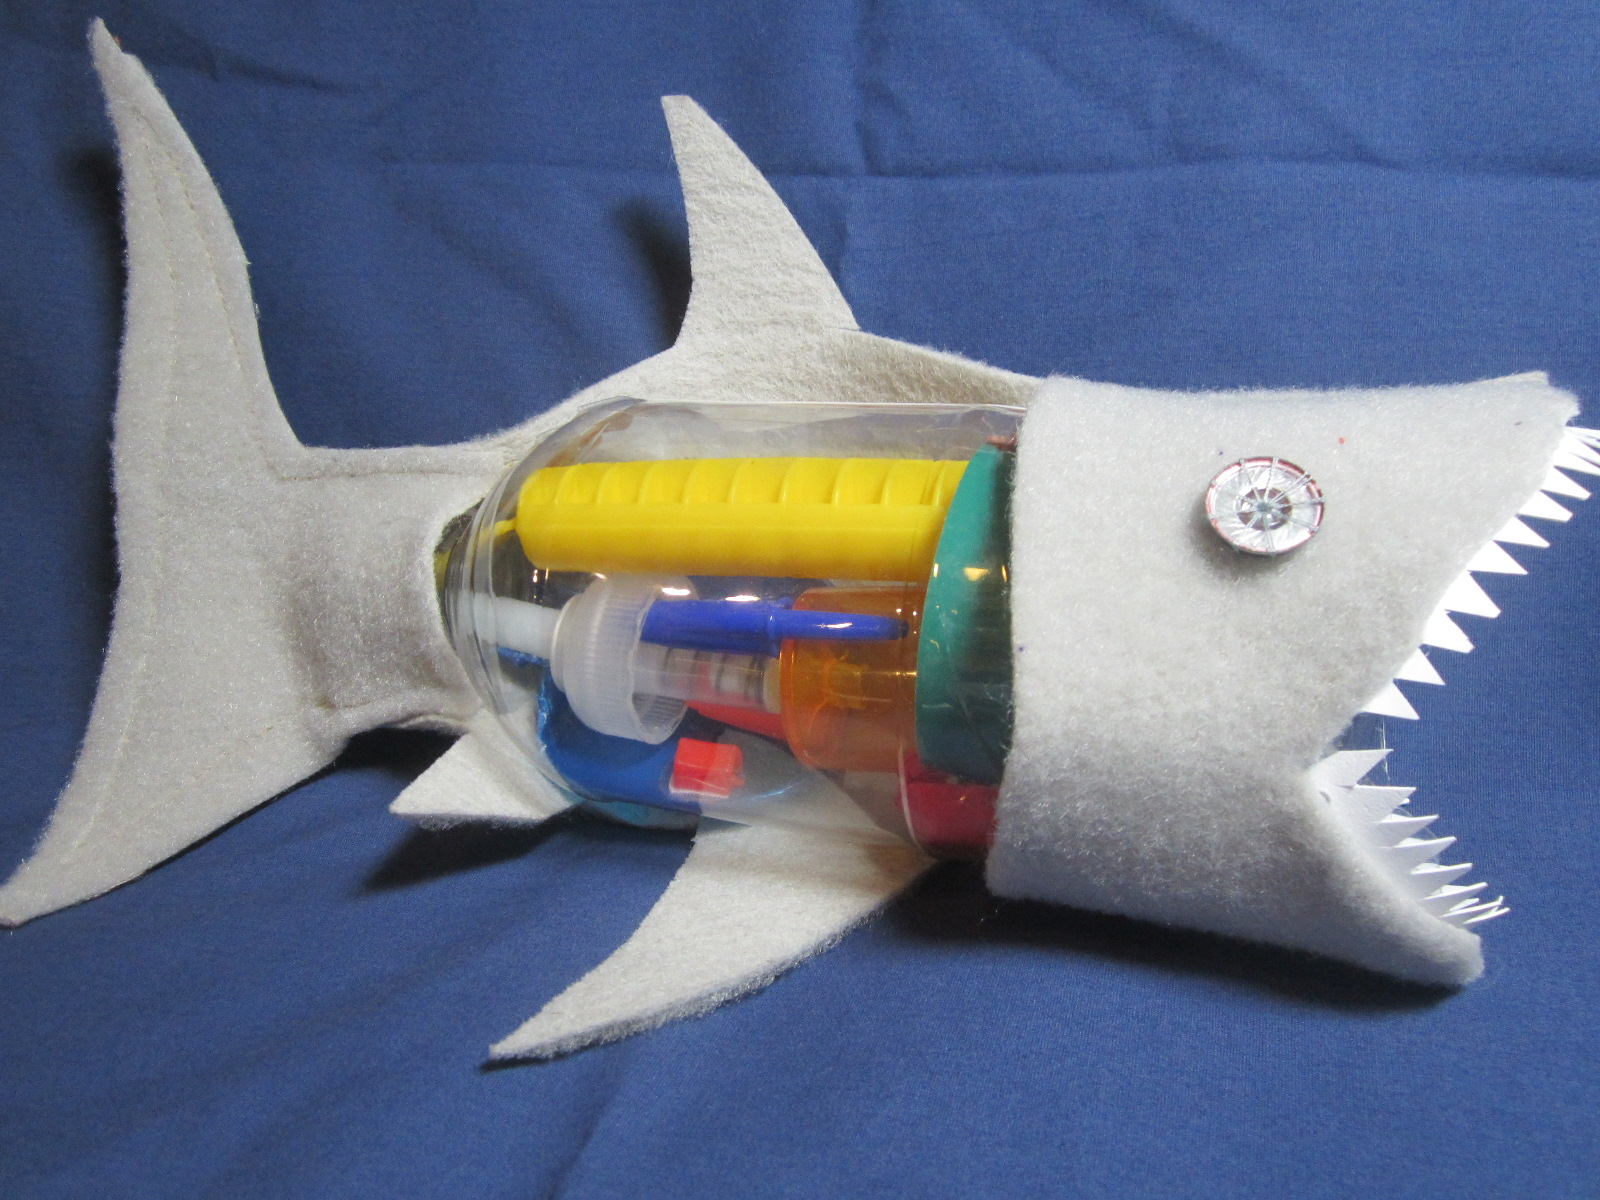 Shark anatomy model made from trash